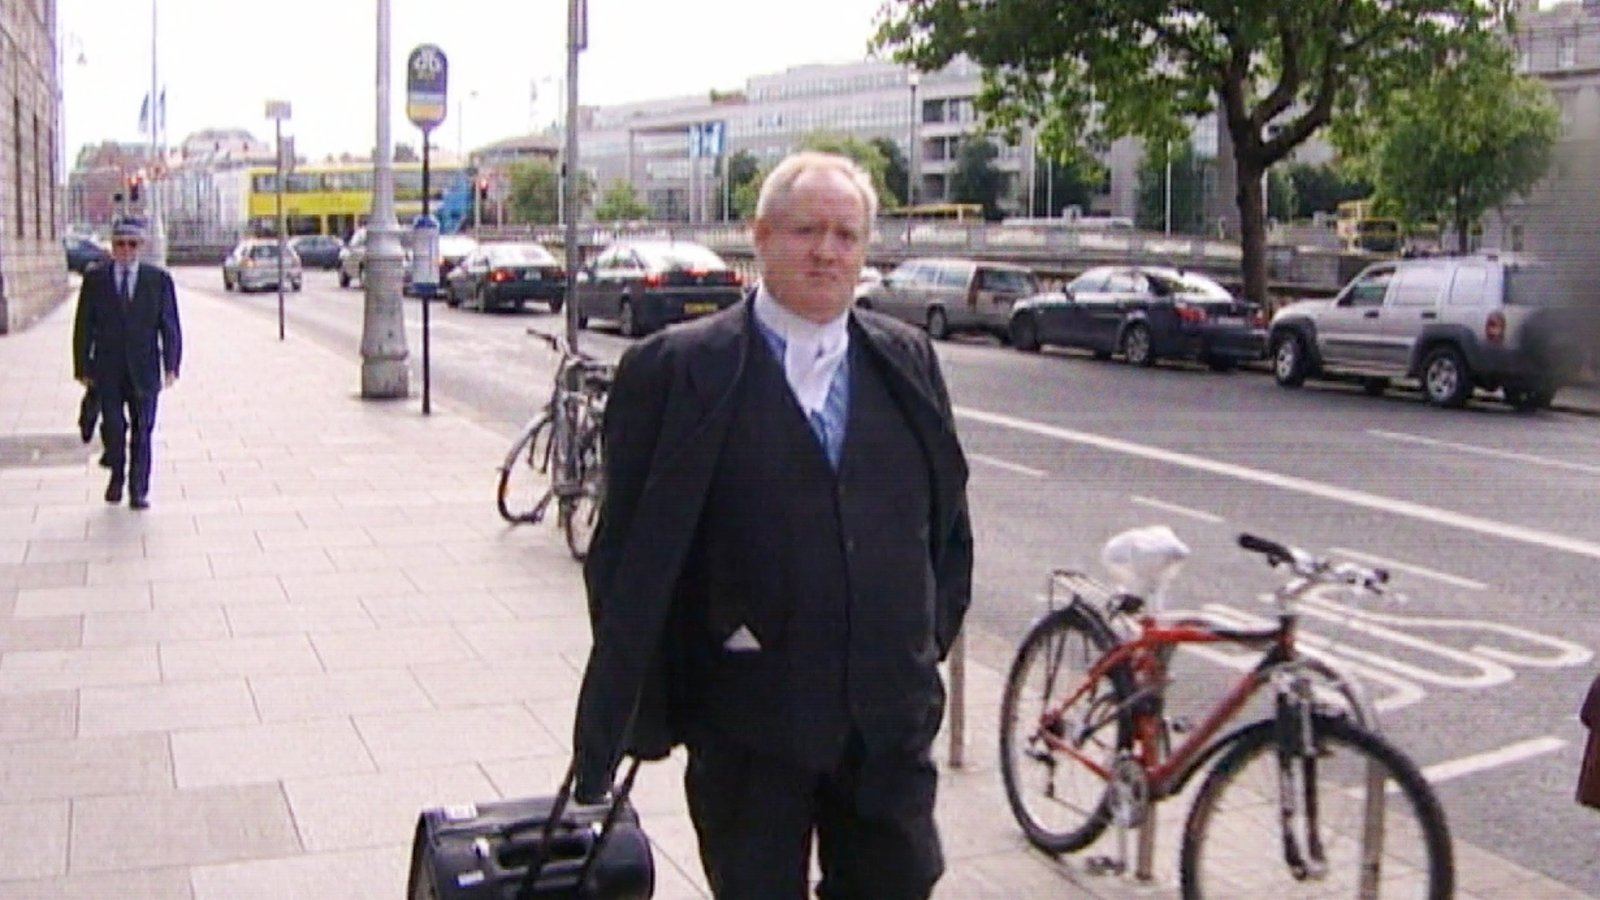 Image - In 2001, to the horror of Esther Wilson's family, Patrick Russell became a barrister